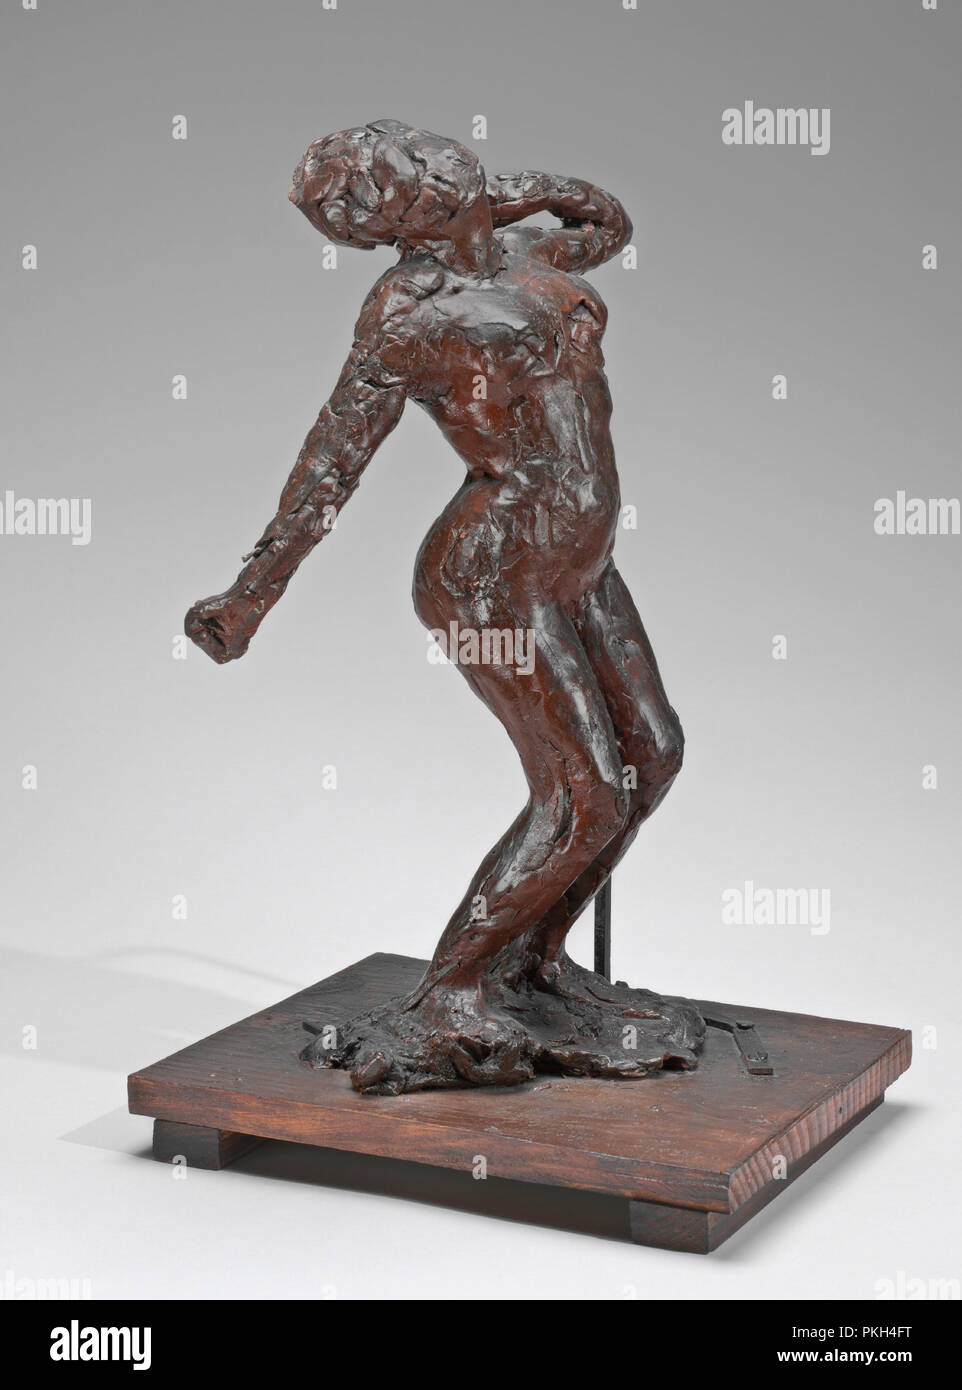 Woman Stretching. Dated: c. 1896/1911. Dimensions: overall without base: 36.4 x 20.2 x 15.4 cm (14 5/16 x 7 15/16 x 6 1/16 in.). Medium: pigmented beeswax, metal armature, on wooden base. Museum: National Gallery of Art, Washington DC. Author: EDGAR DEGAS. - Stock Image